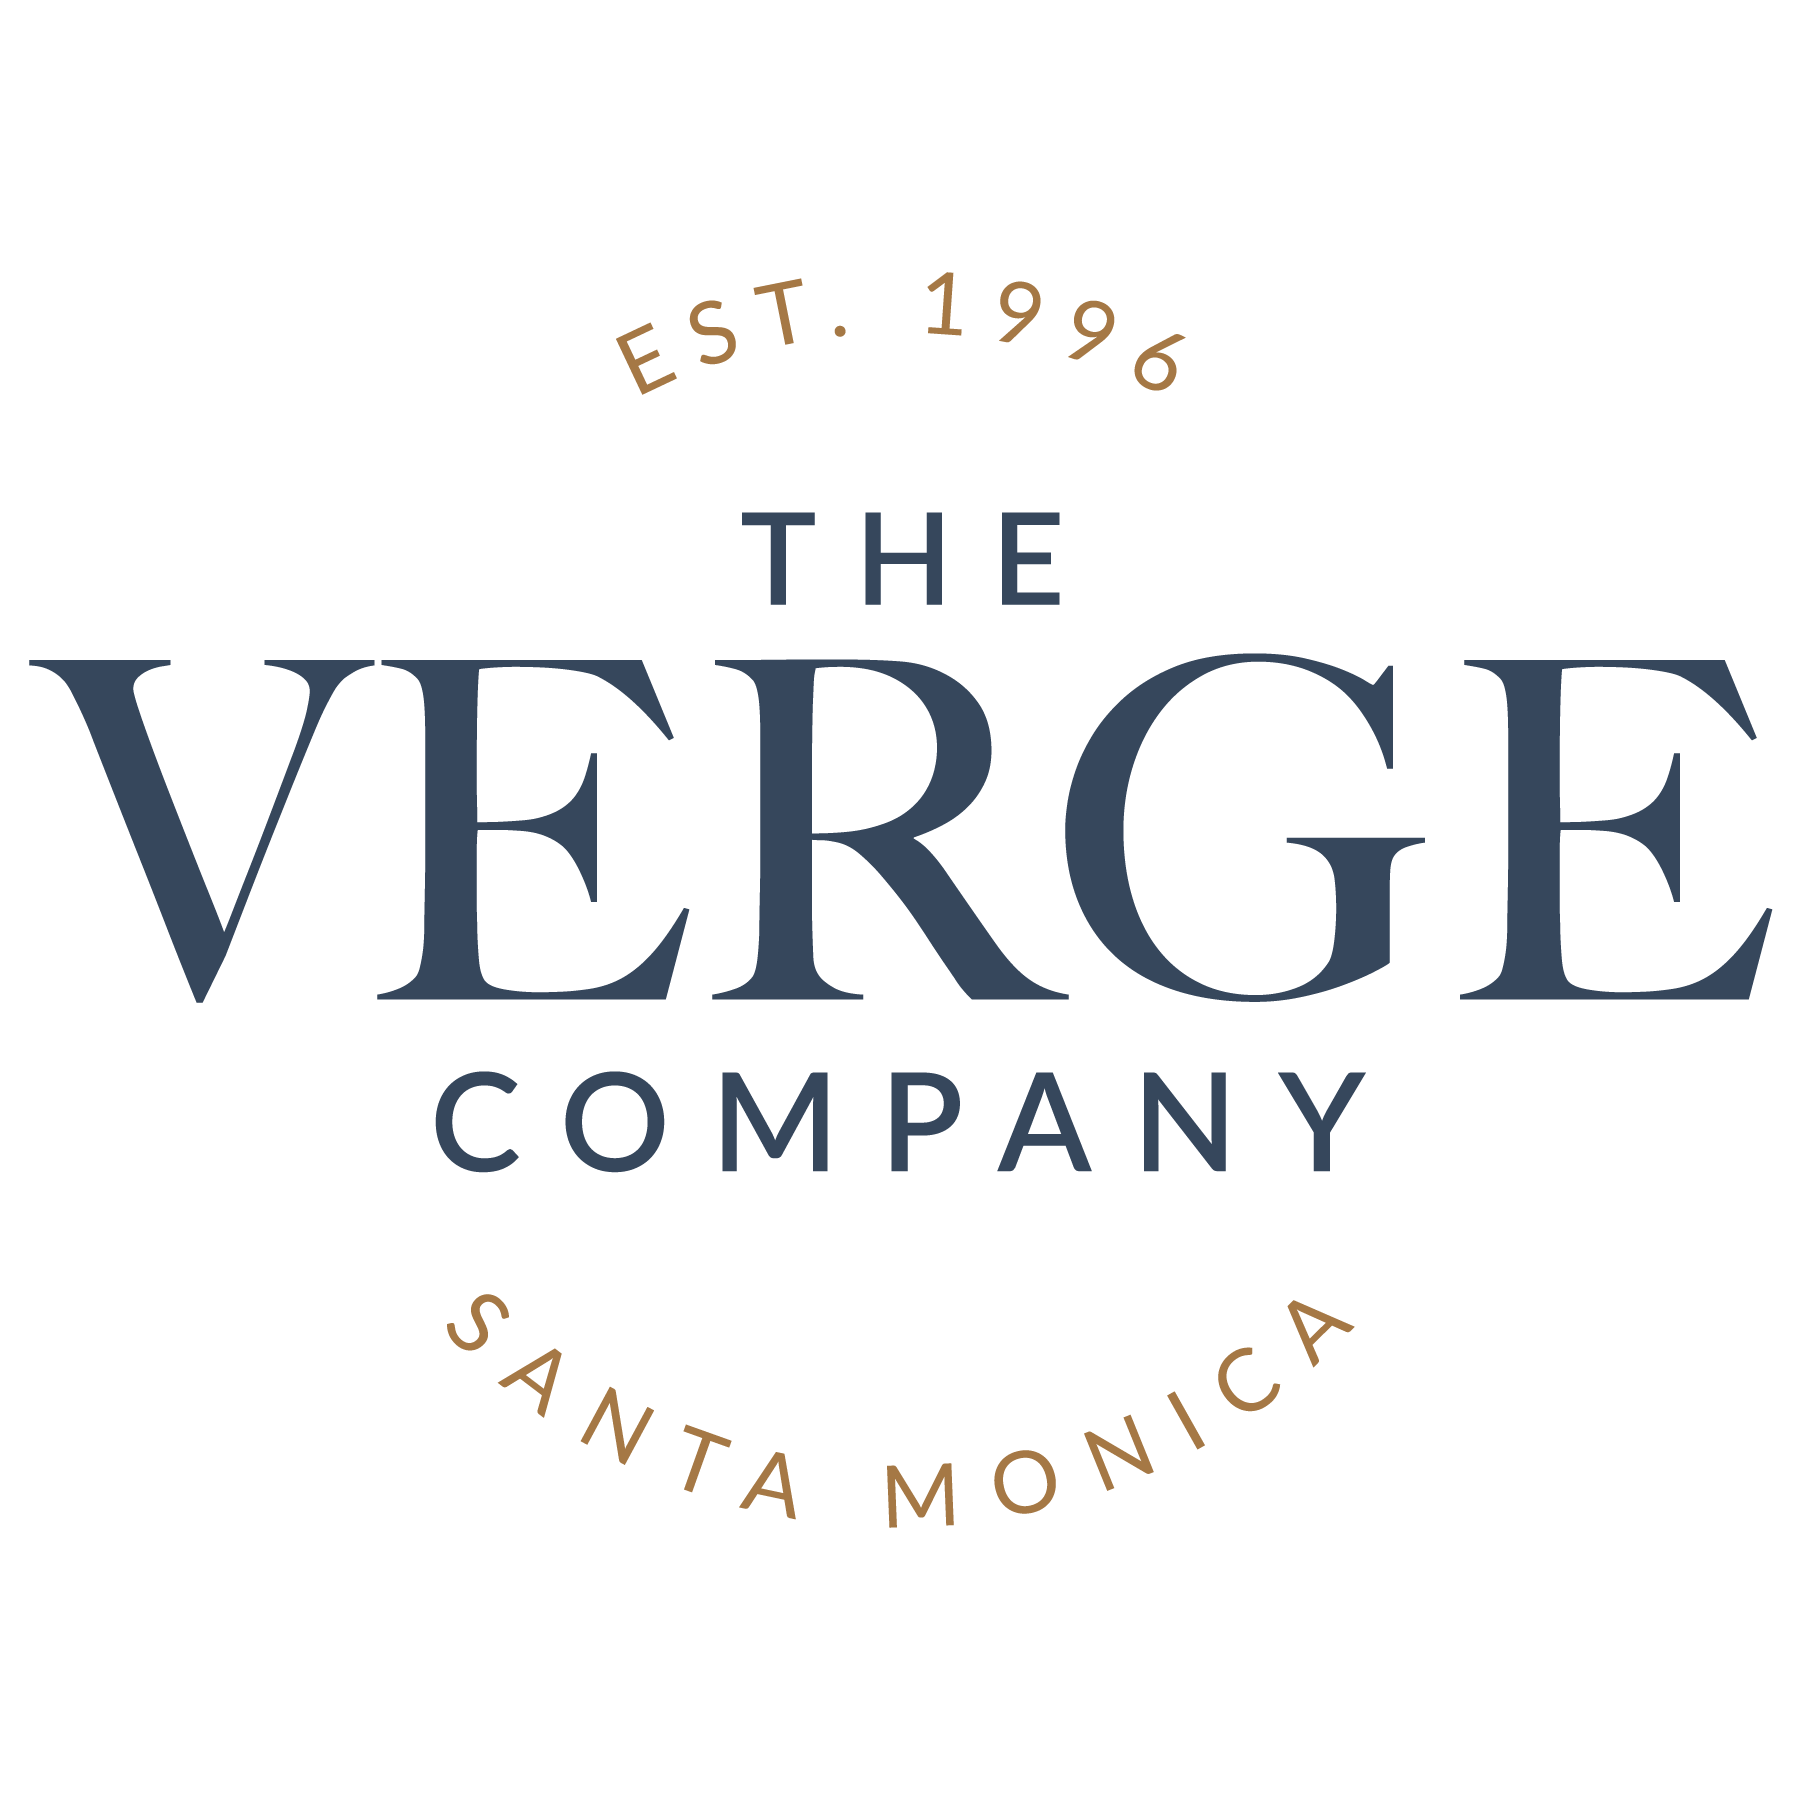 The Verge Co Logos-02.png